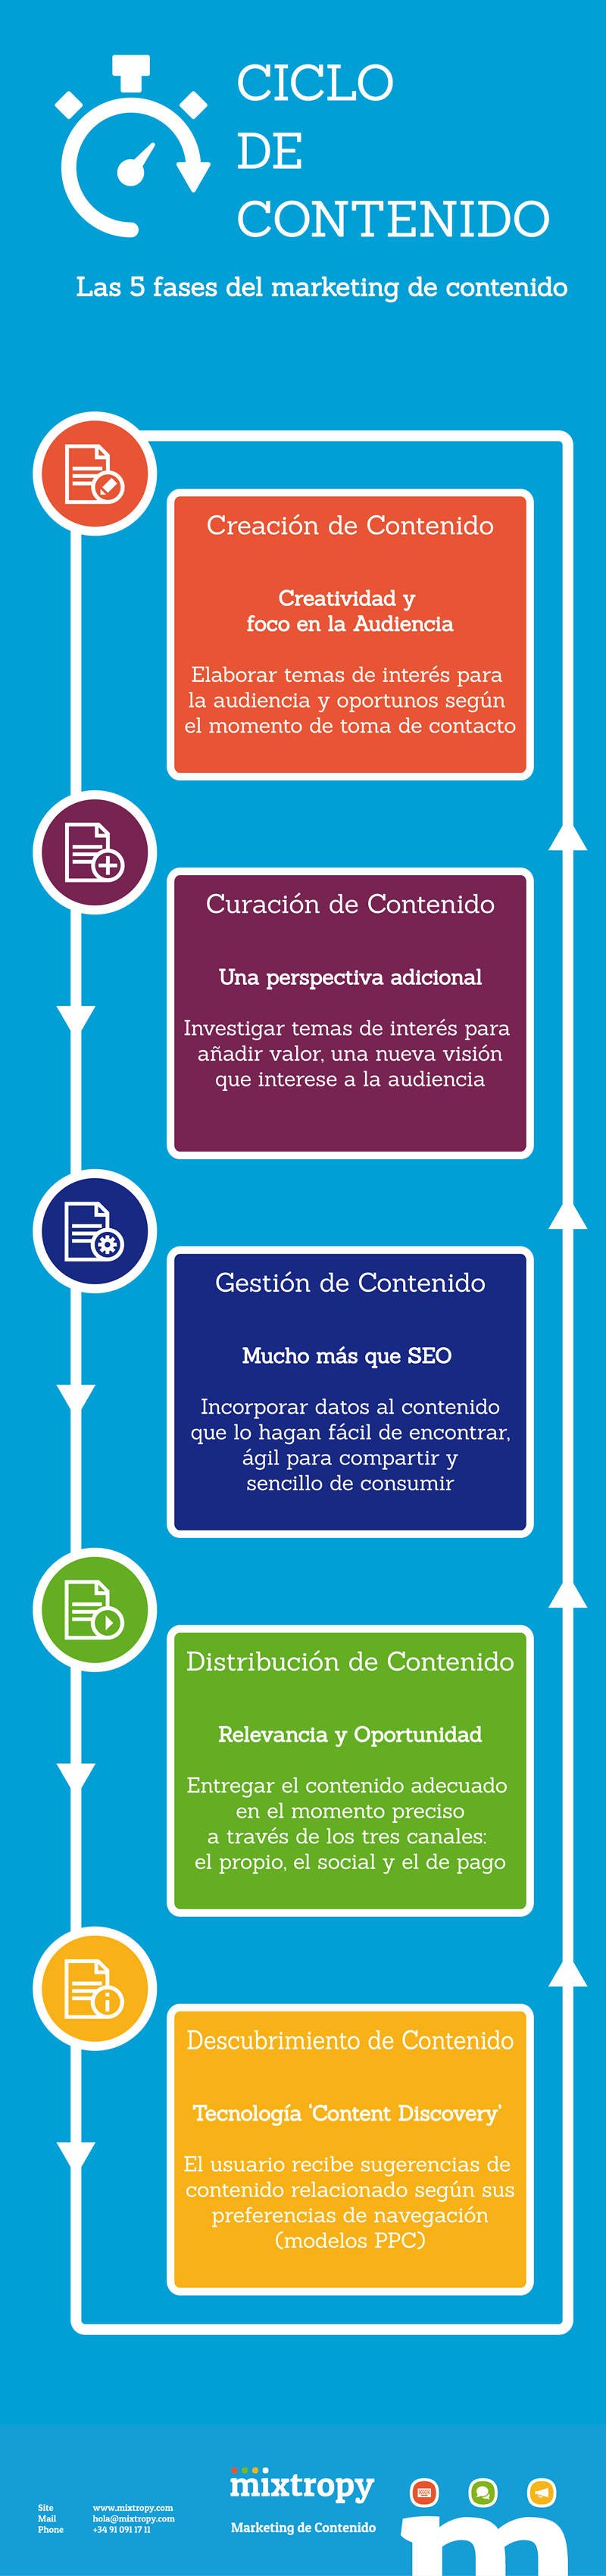 5 fases del Marketing de Contenido